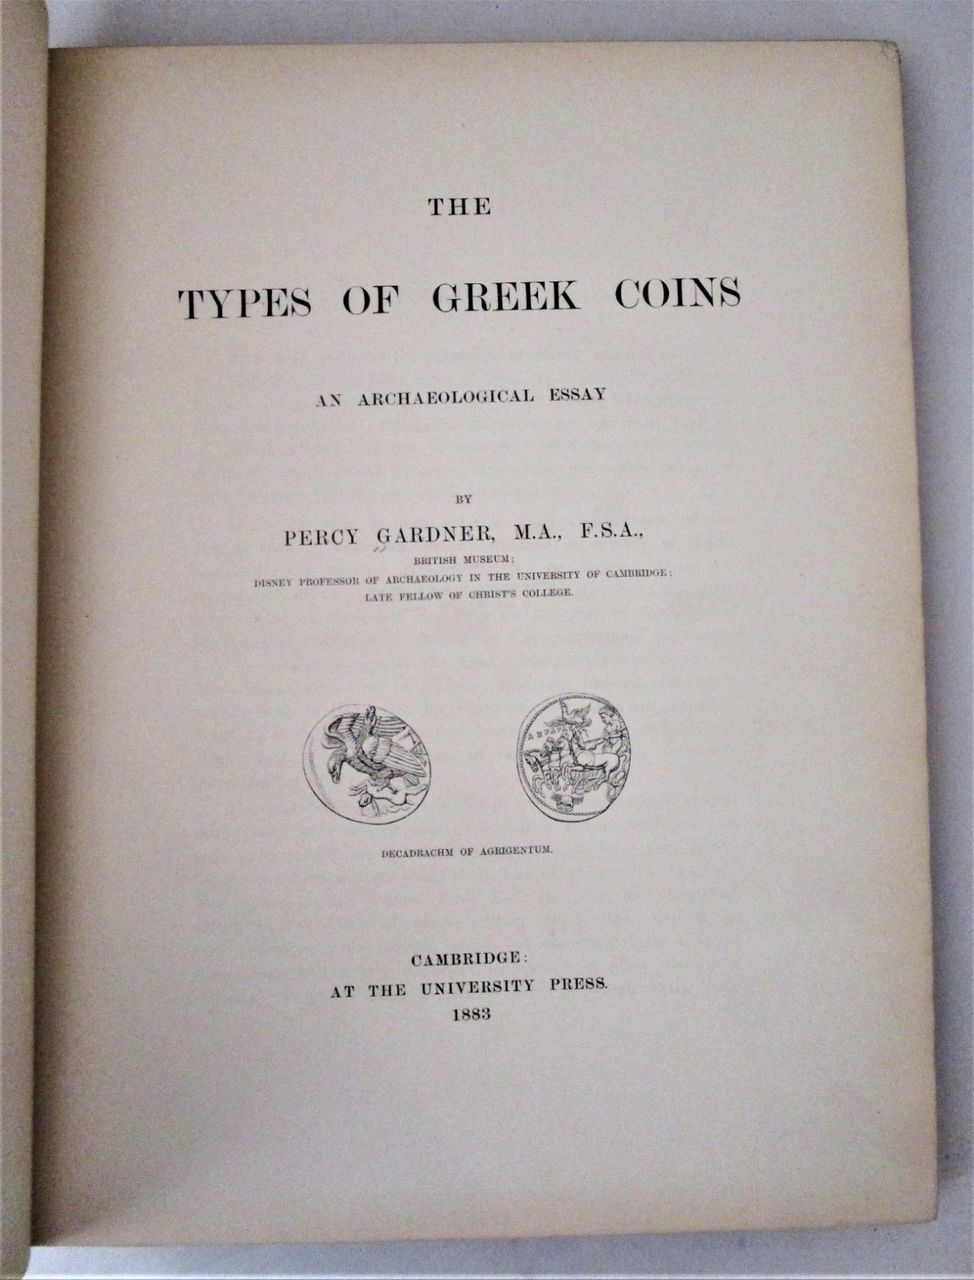 THE TYPES OF GREEK COINS: AN ARCHAEOLOGICAL ESSAY, P. Gardner - 1883 Numismatics